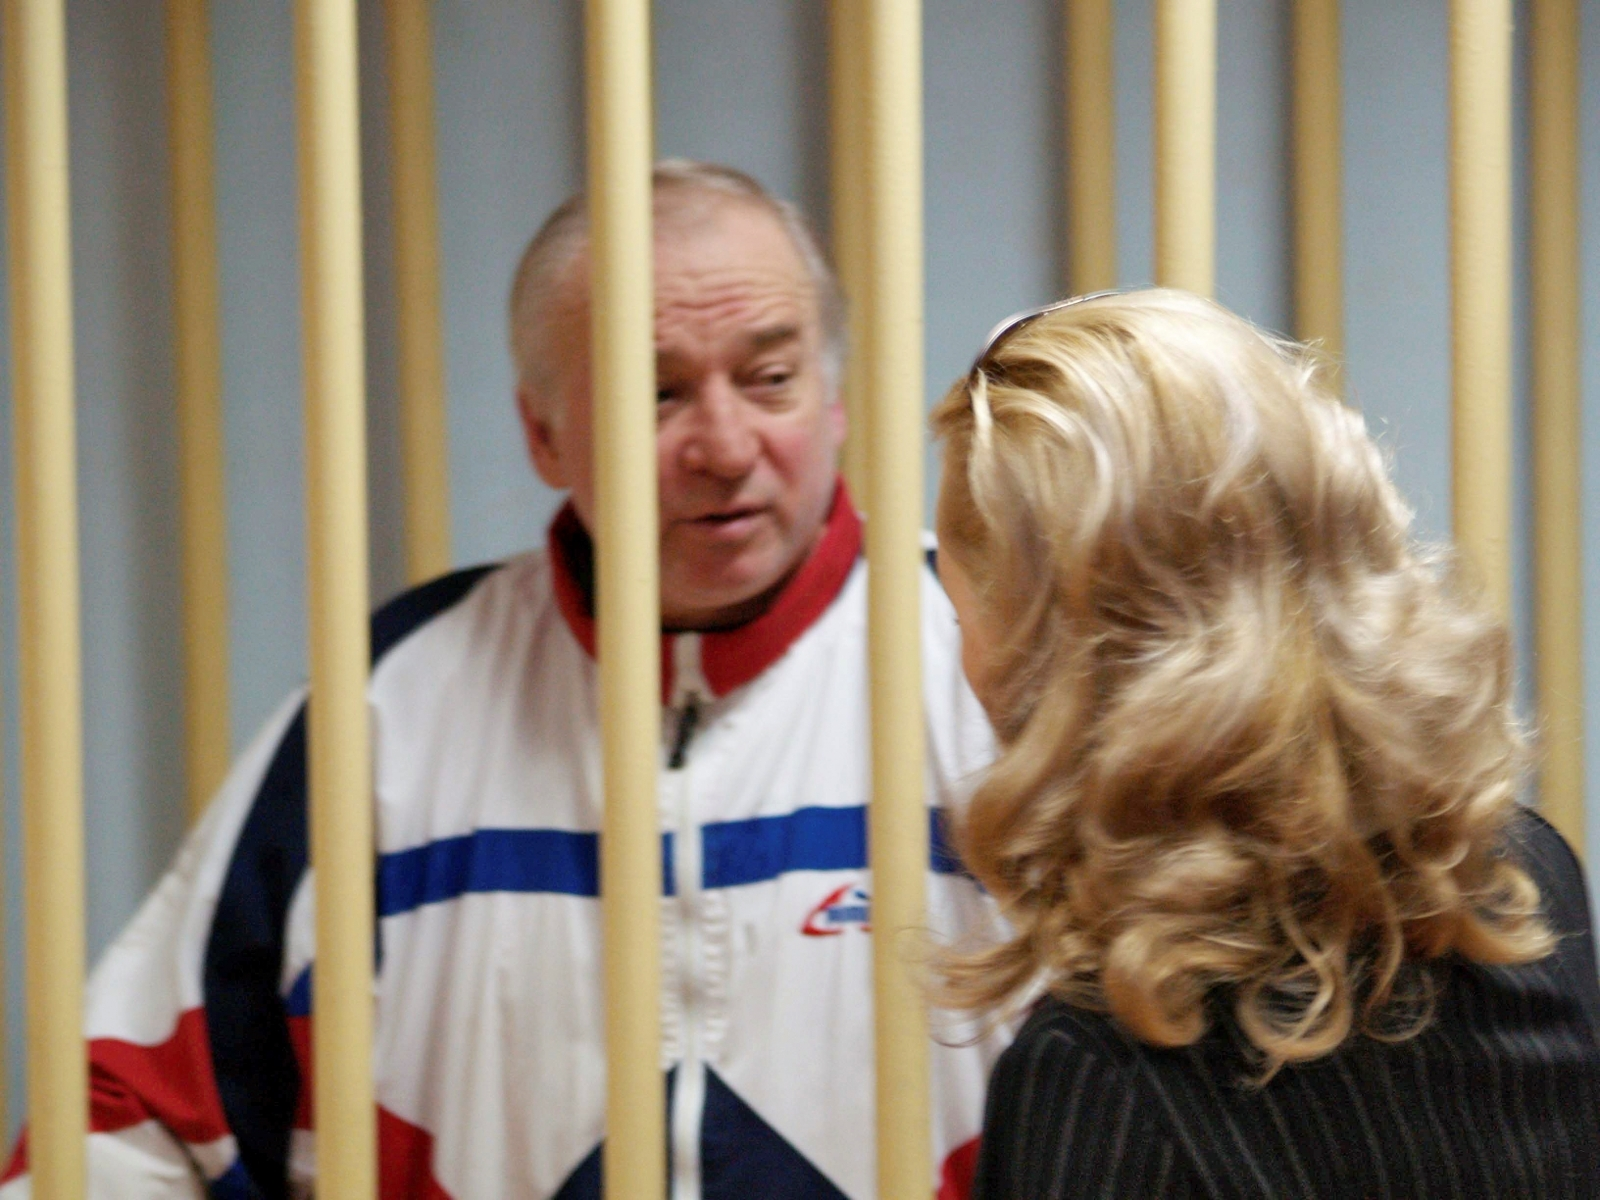 Ex-KGB spy, daughter seriously ill after 'substance exposure'